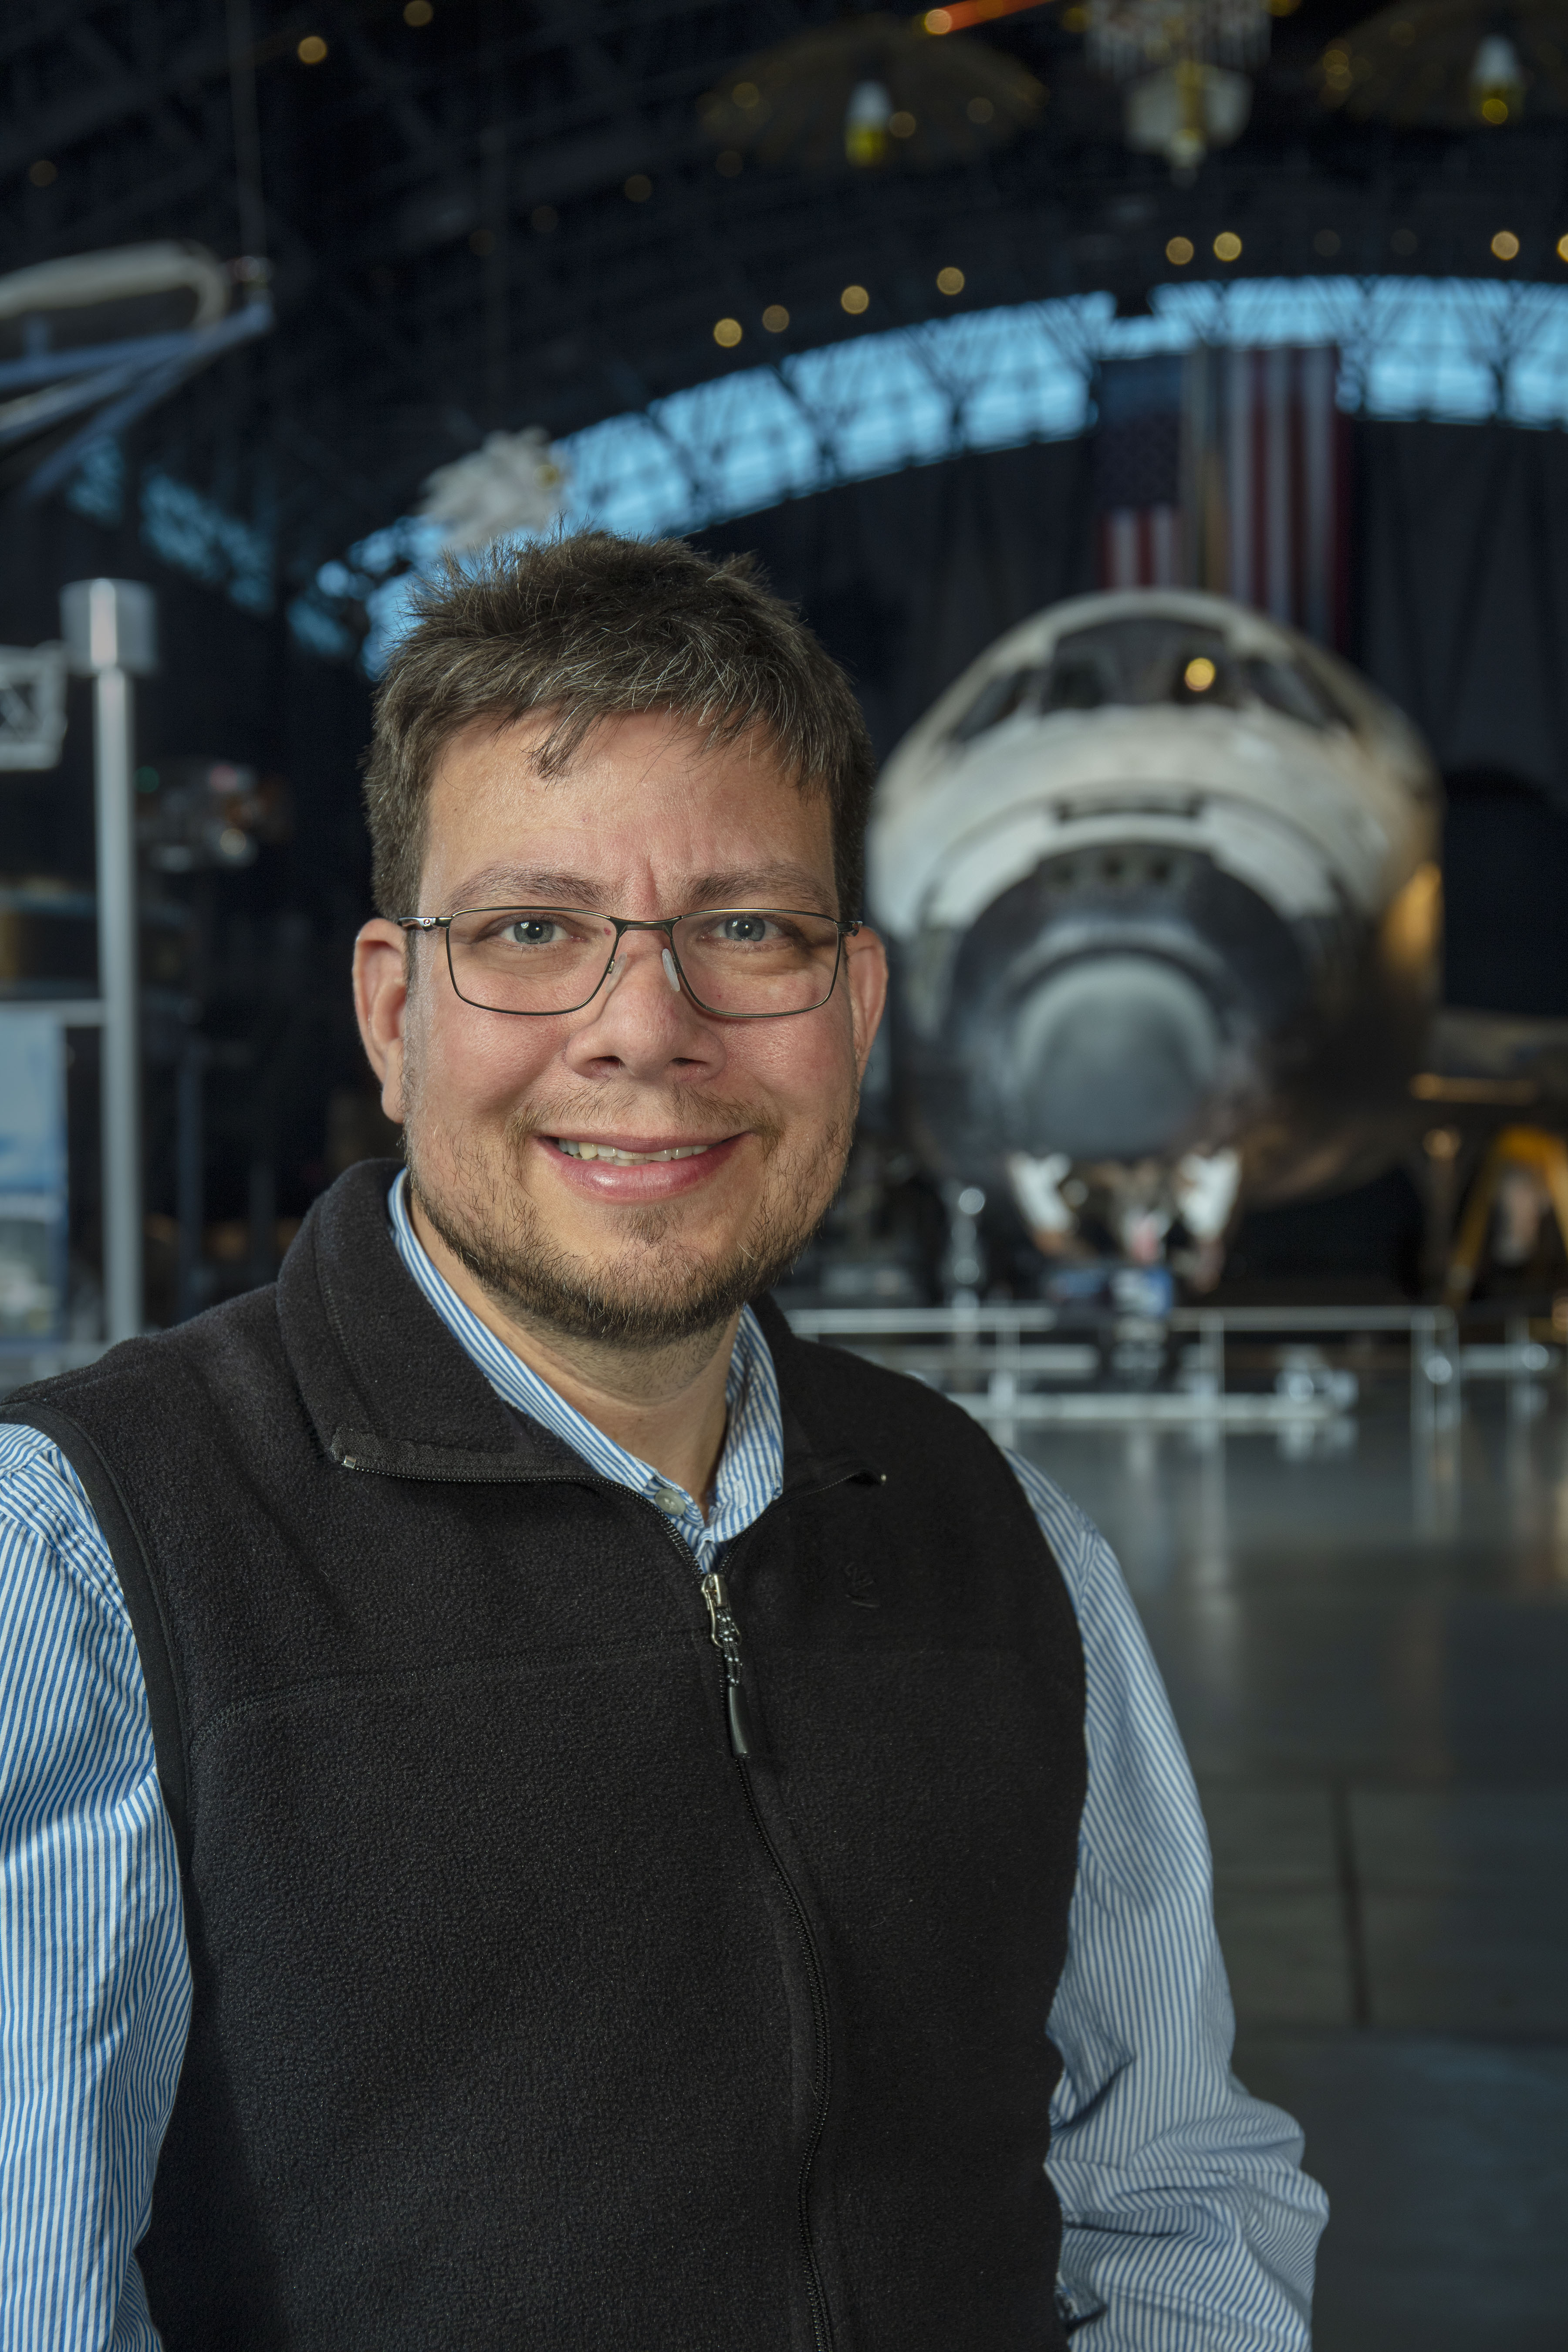 Francisco Torres in front of the space shuttle Discovery